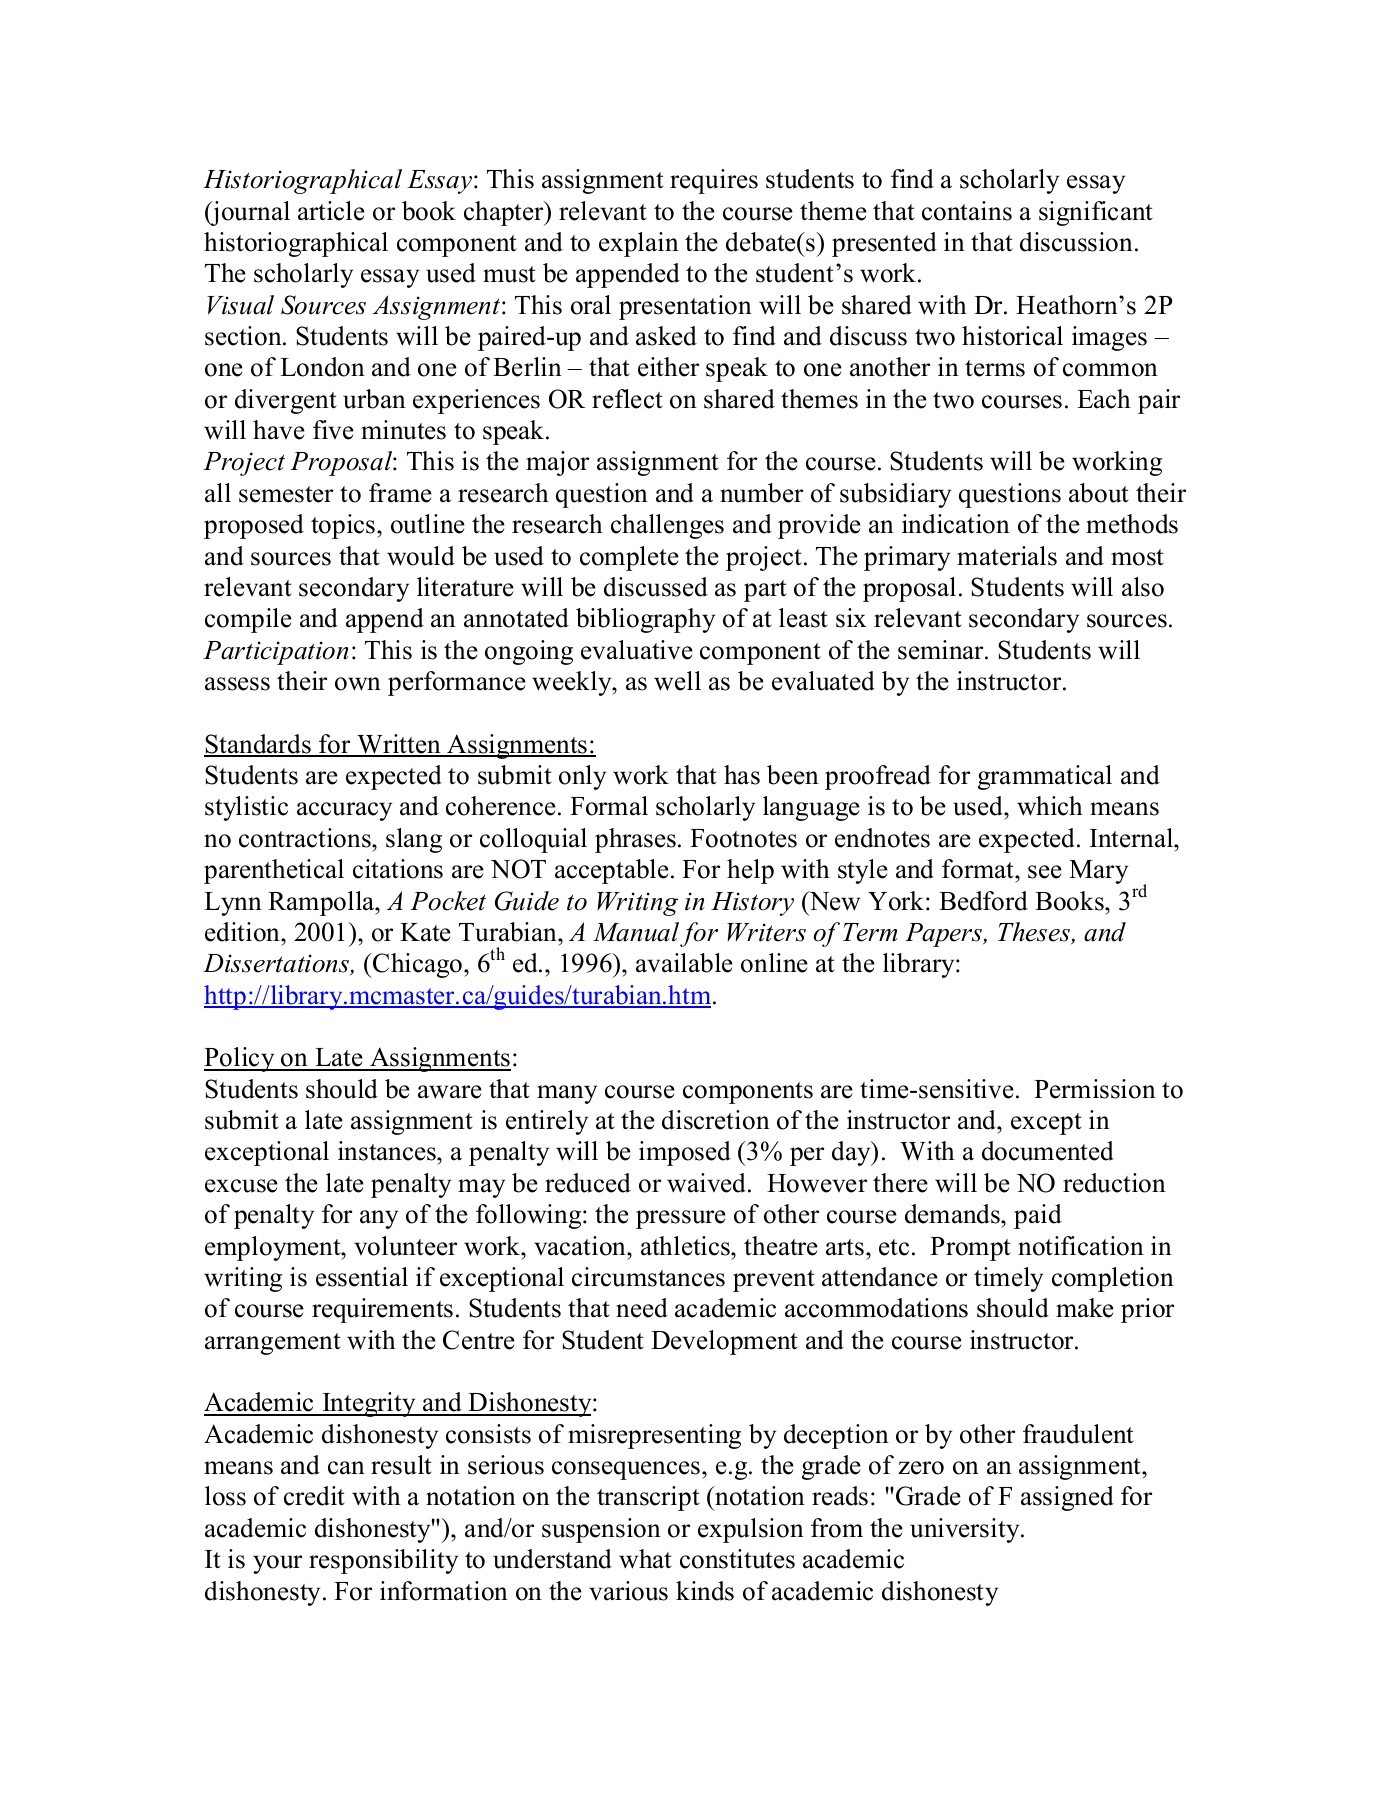 010 Historiographical Essay Phenomenal Outline On The Civil War Full